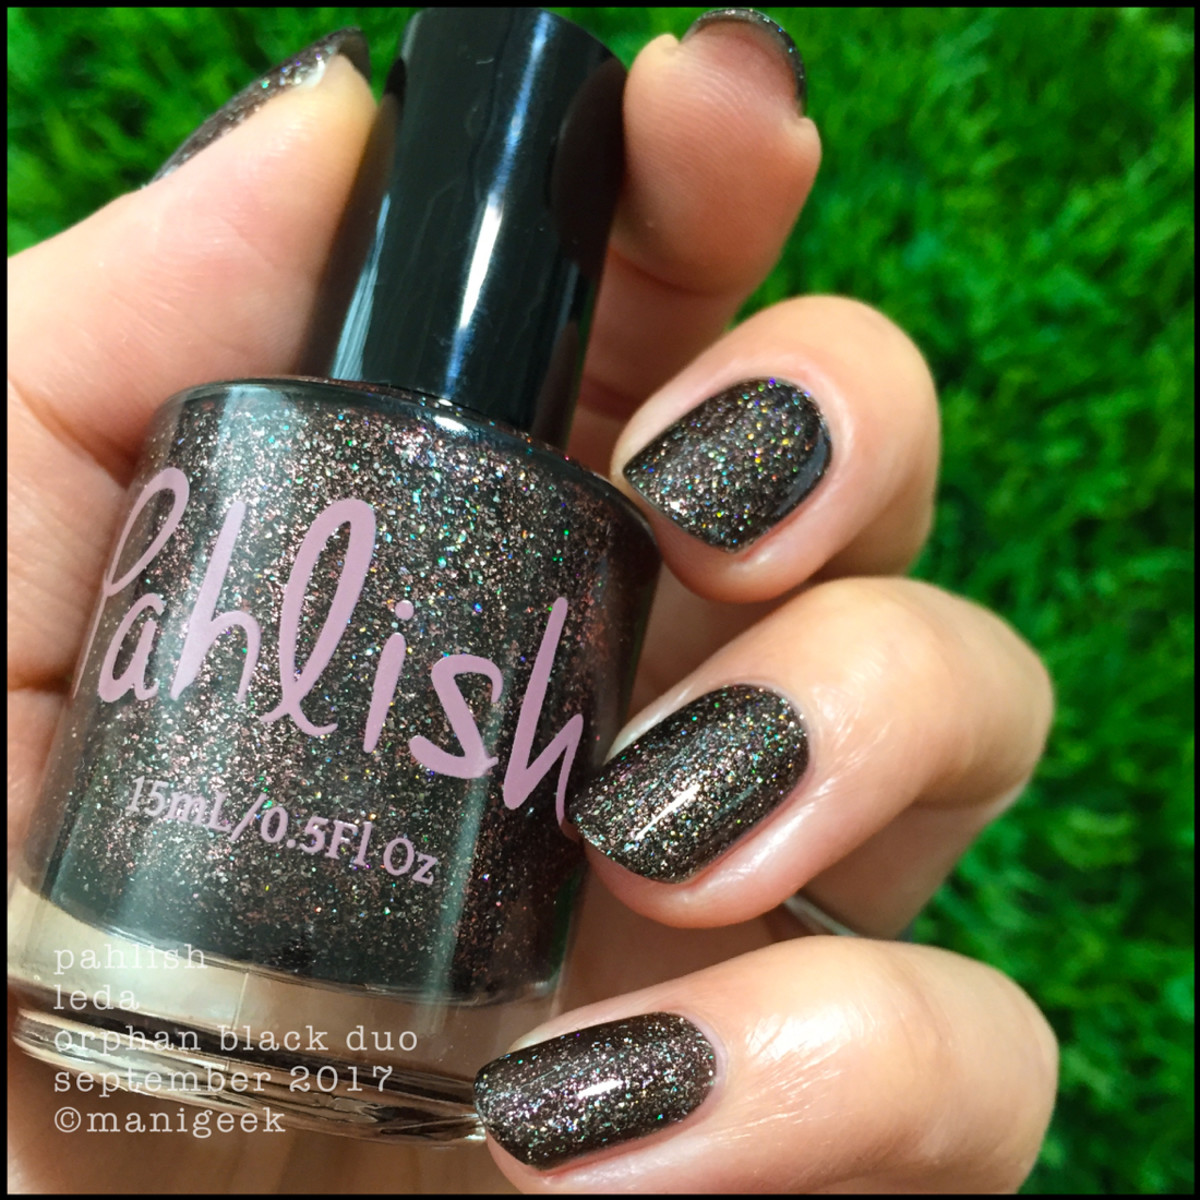 Pahlish Leda Orphan Black Swatches 2 _ Pahlish September 2017 Release Swatches Manigeek